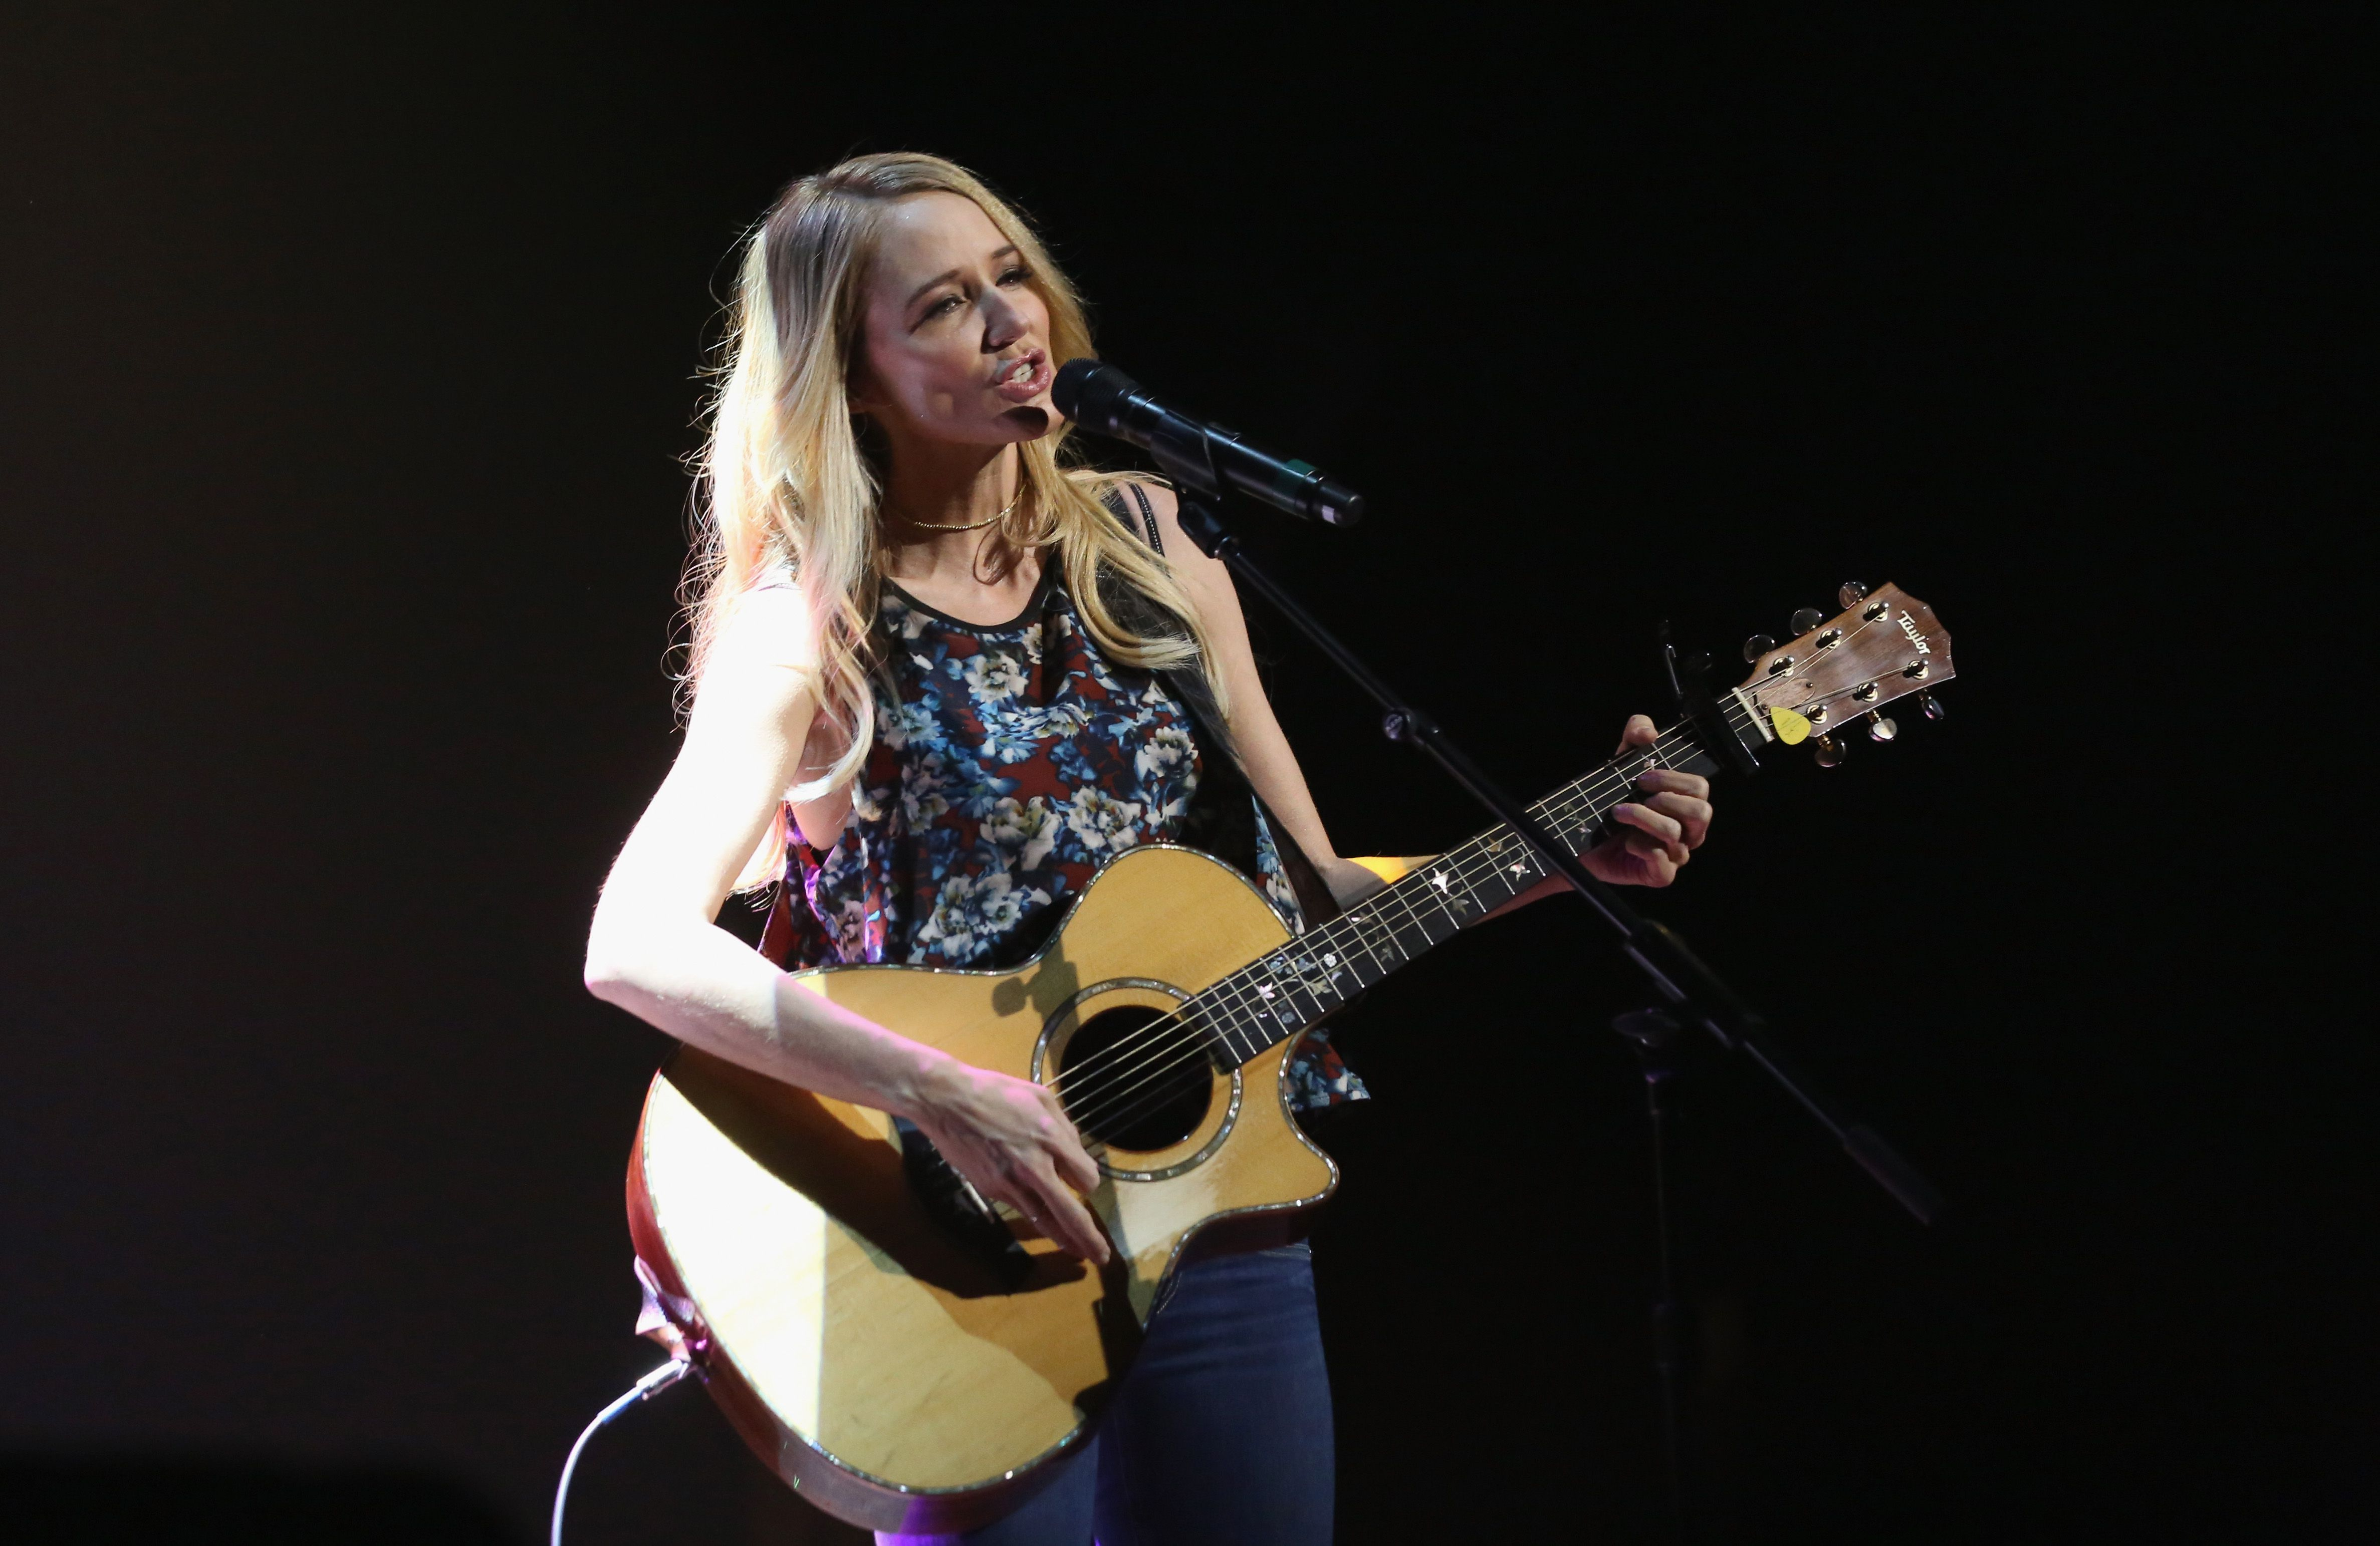 5 Country Artists Similar To Taylor Swift